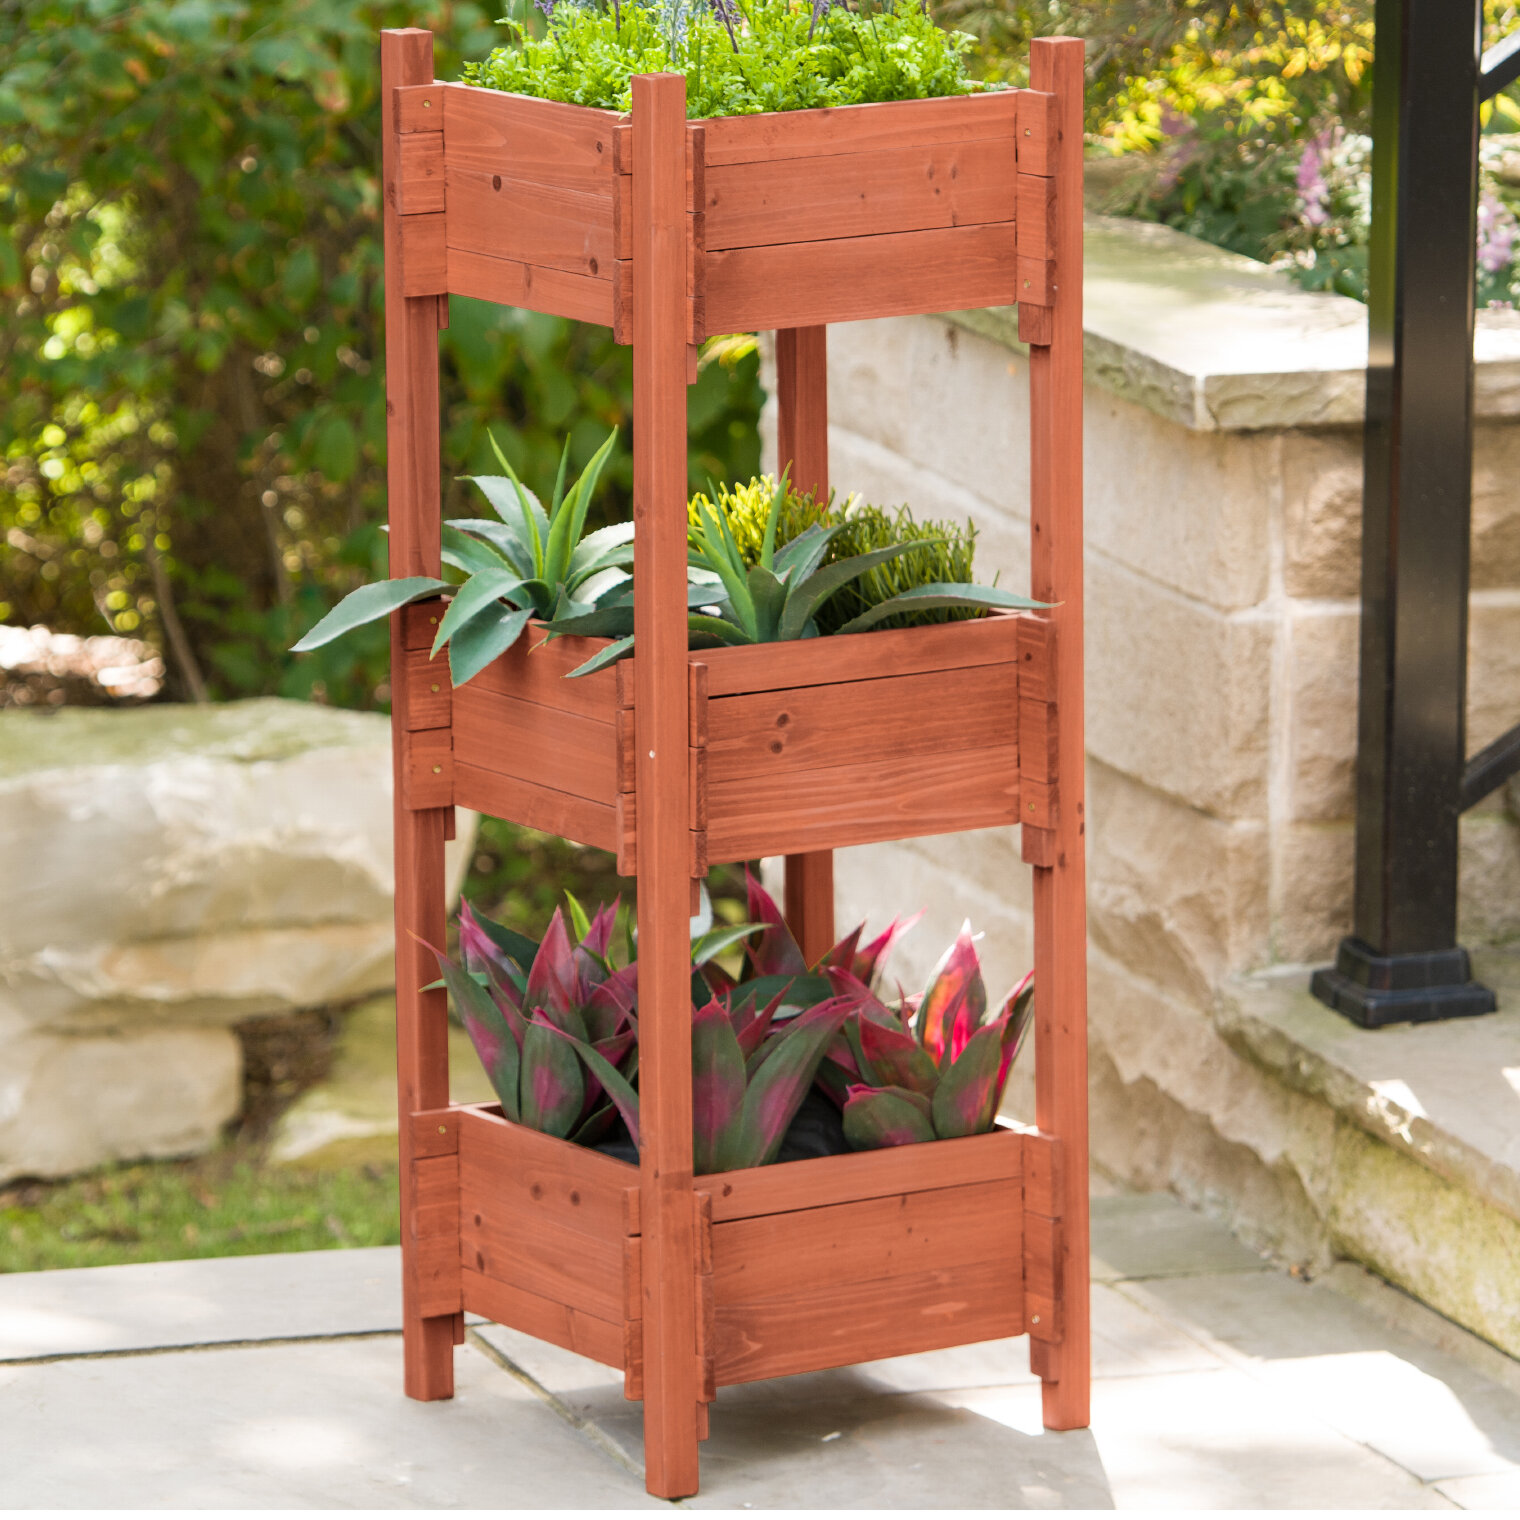 Leisure Season Wood Vertical Garden Wayfair